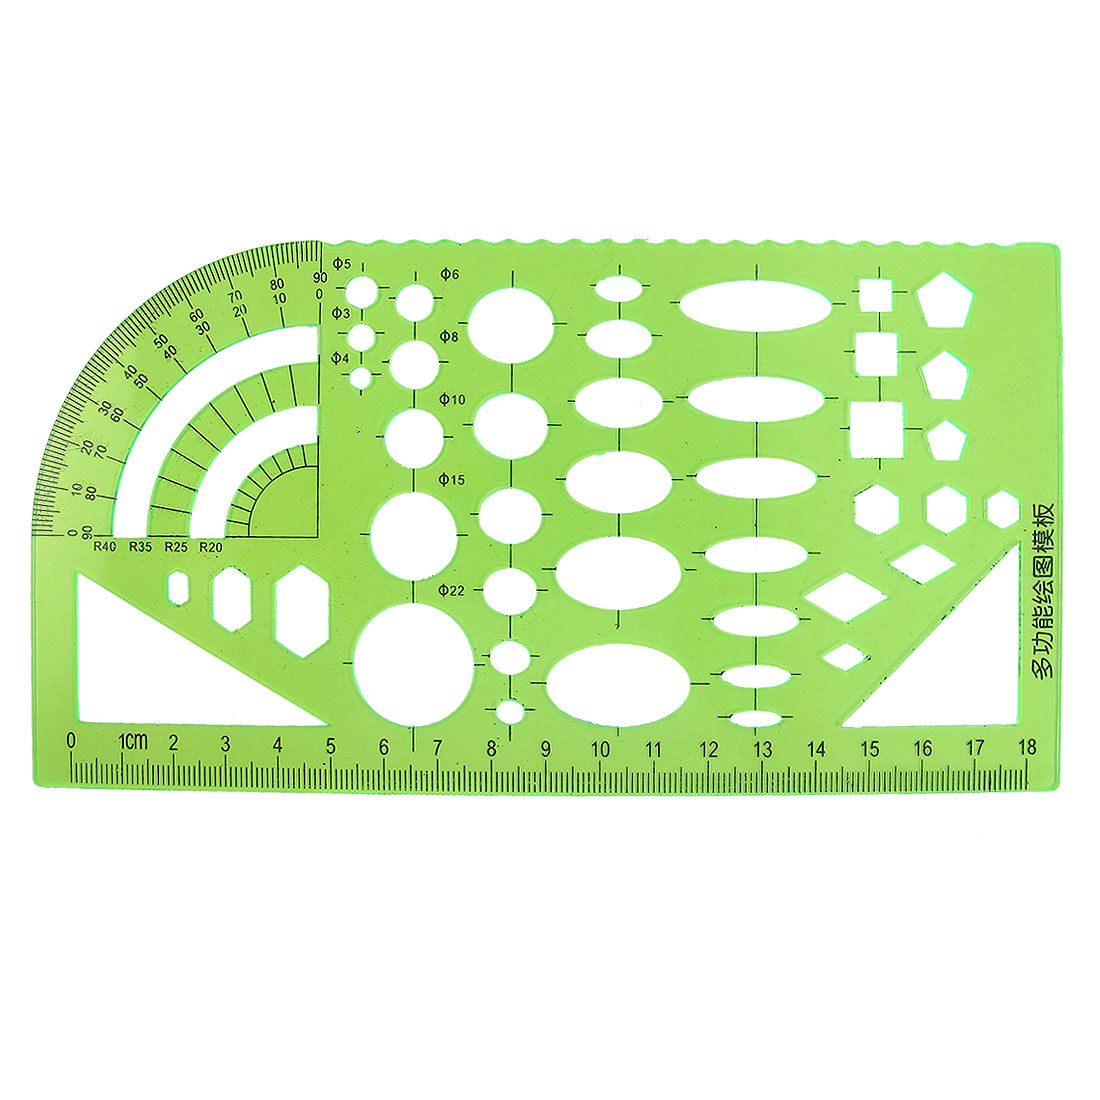 School Green Stationery Measuring Template Ruler Guide for Students